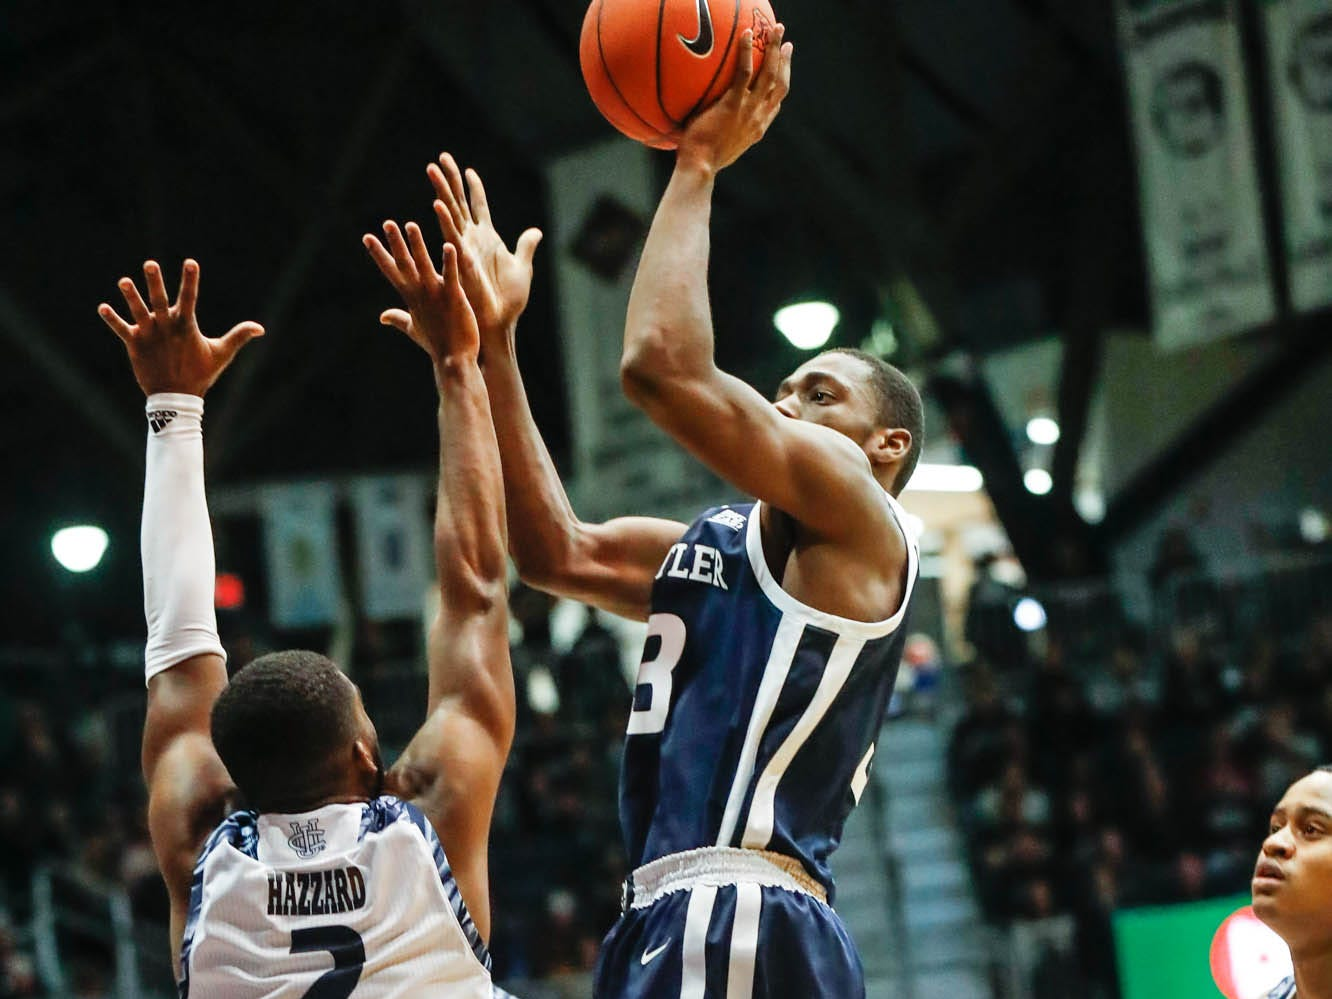 Butler University's guard Kamar Baldwin (3) shoots the ball over UC Irvines's guard Max Hazzard (2), during a game between Butler University and UC Irvine, at Hinkle Fieldhouse on Friday, Dec. 21, 2018.